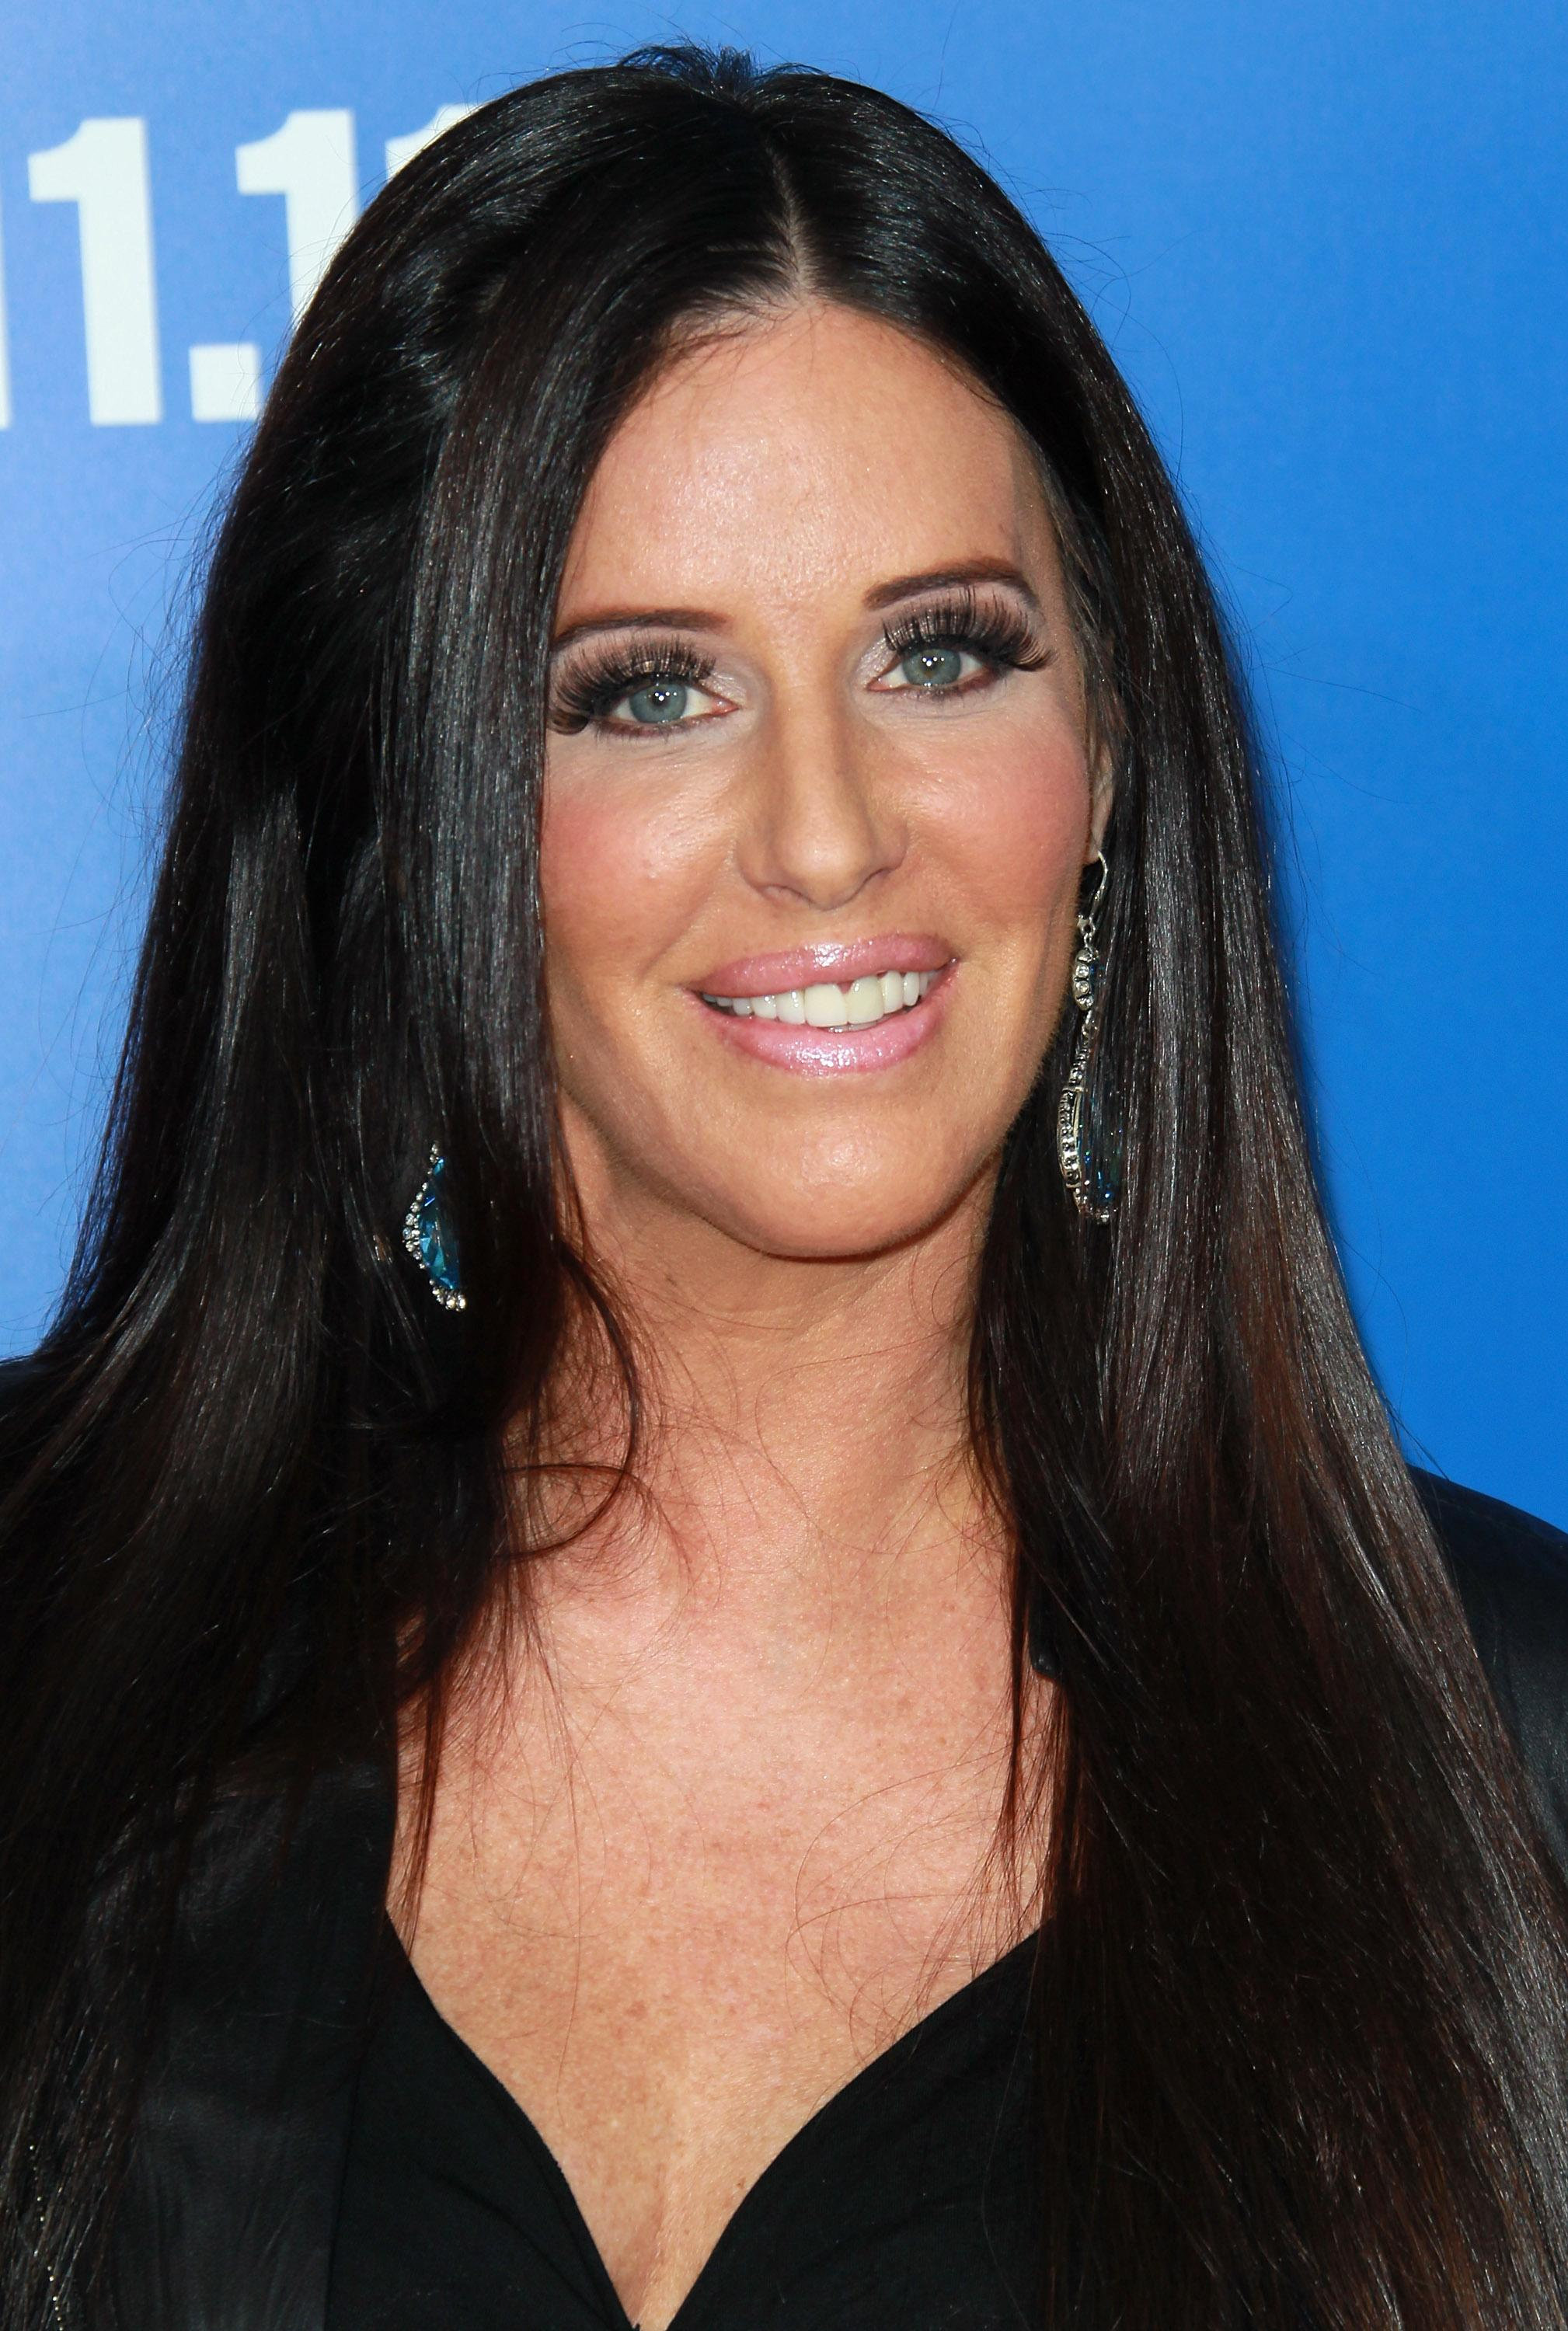 elle dating matchmaker Patti stanger founded millionaire's club in january 2000 ms stanger is the former director of marketing for great expectations (the largest and oldest dating service in the united states), as well as an experienced third-generation matchmaker.